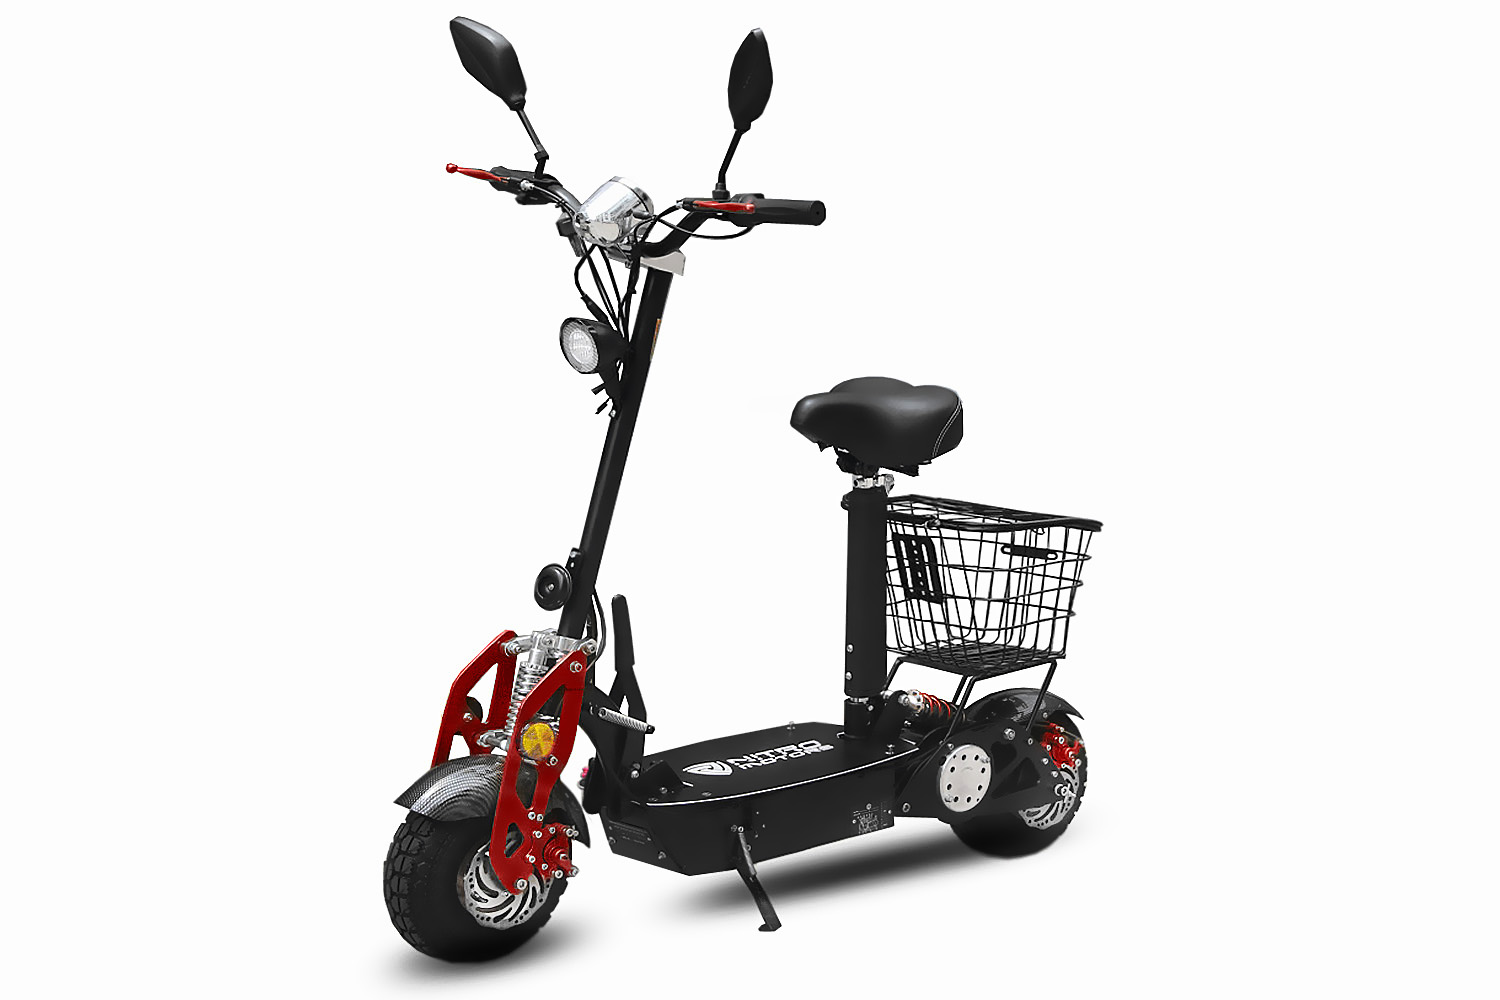 500 watt twister elektro scooter entsprechend stvo elektro scooter mit zulassung in. Black Bedroom Furniture Sets. Home Design Ideas